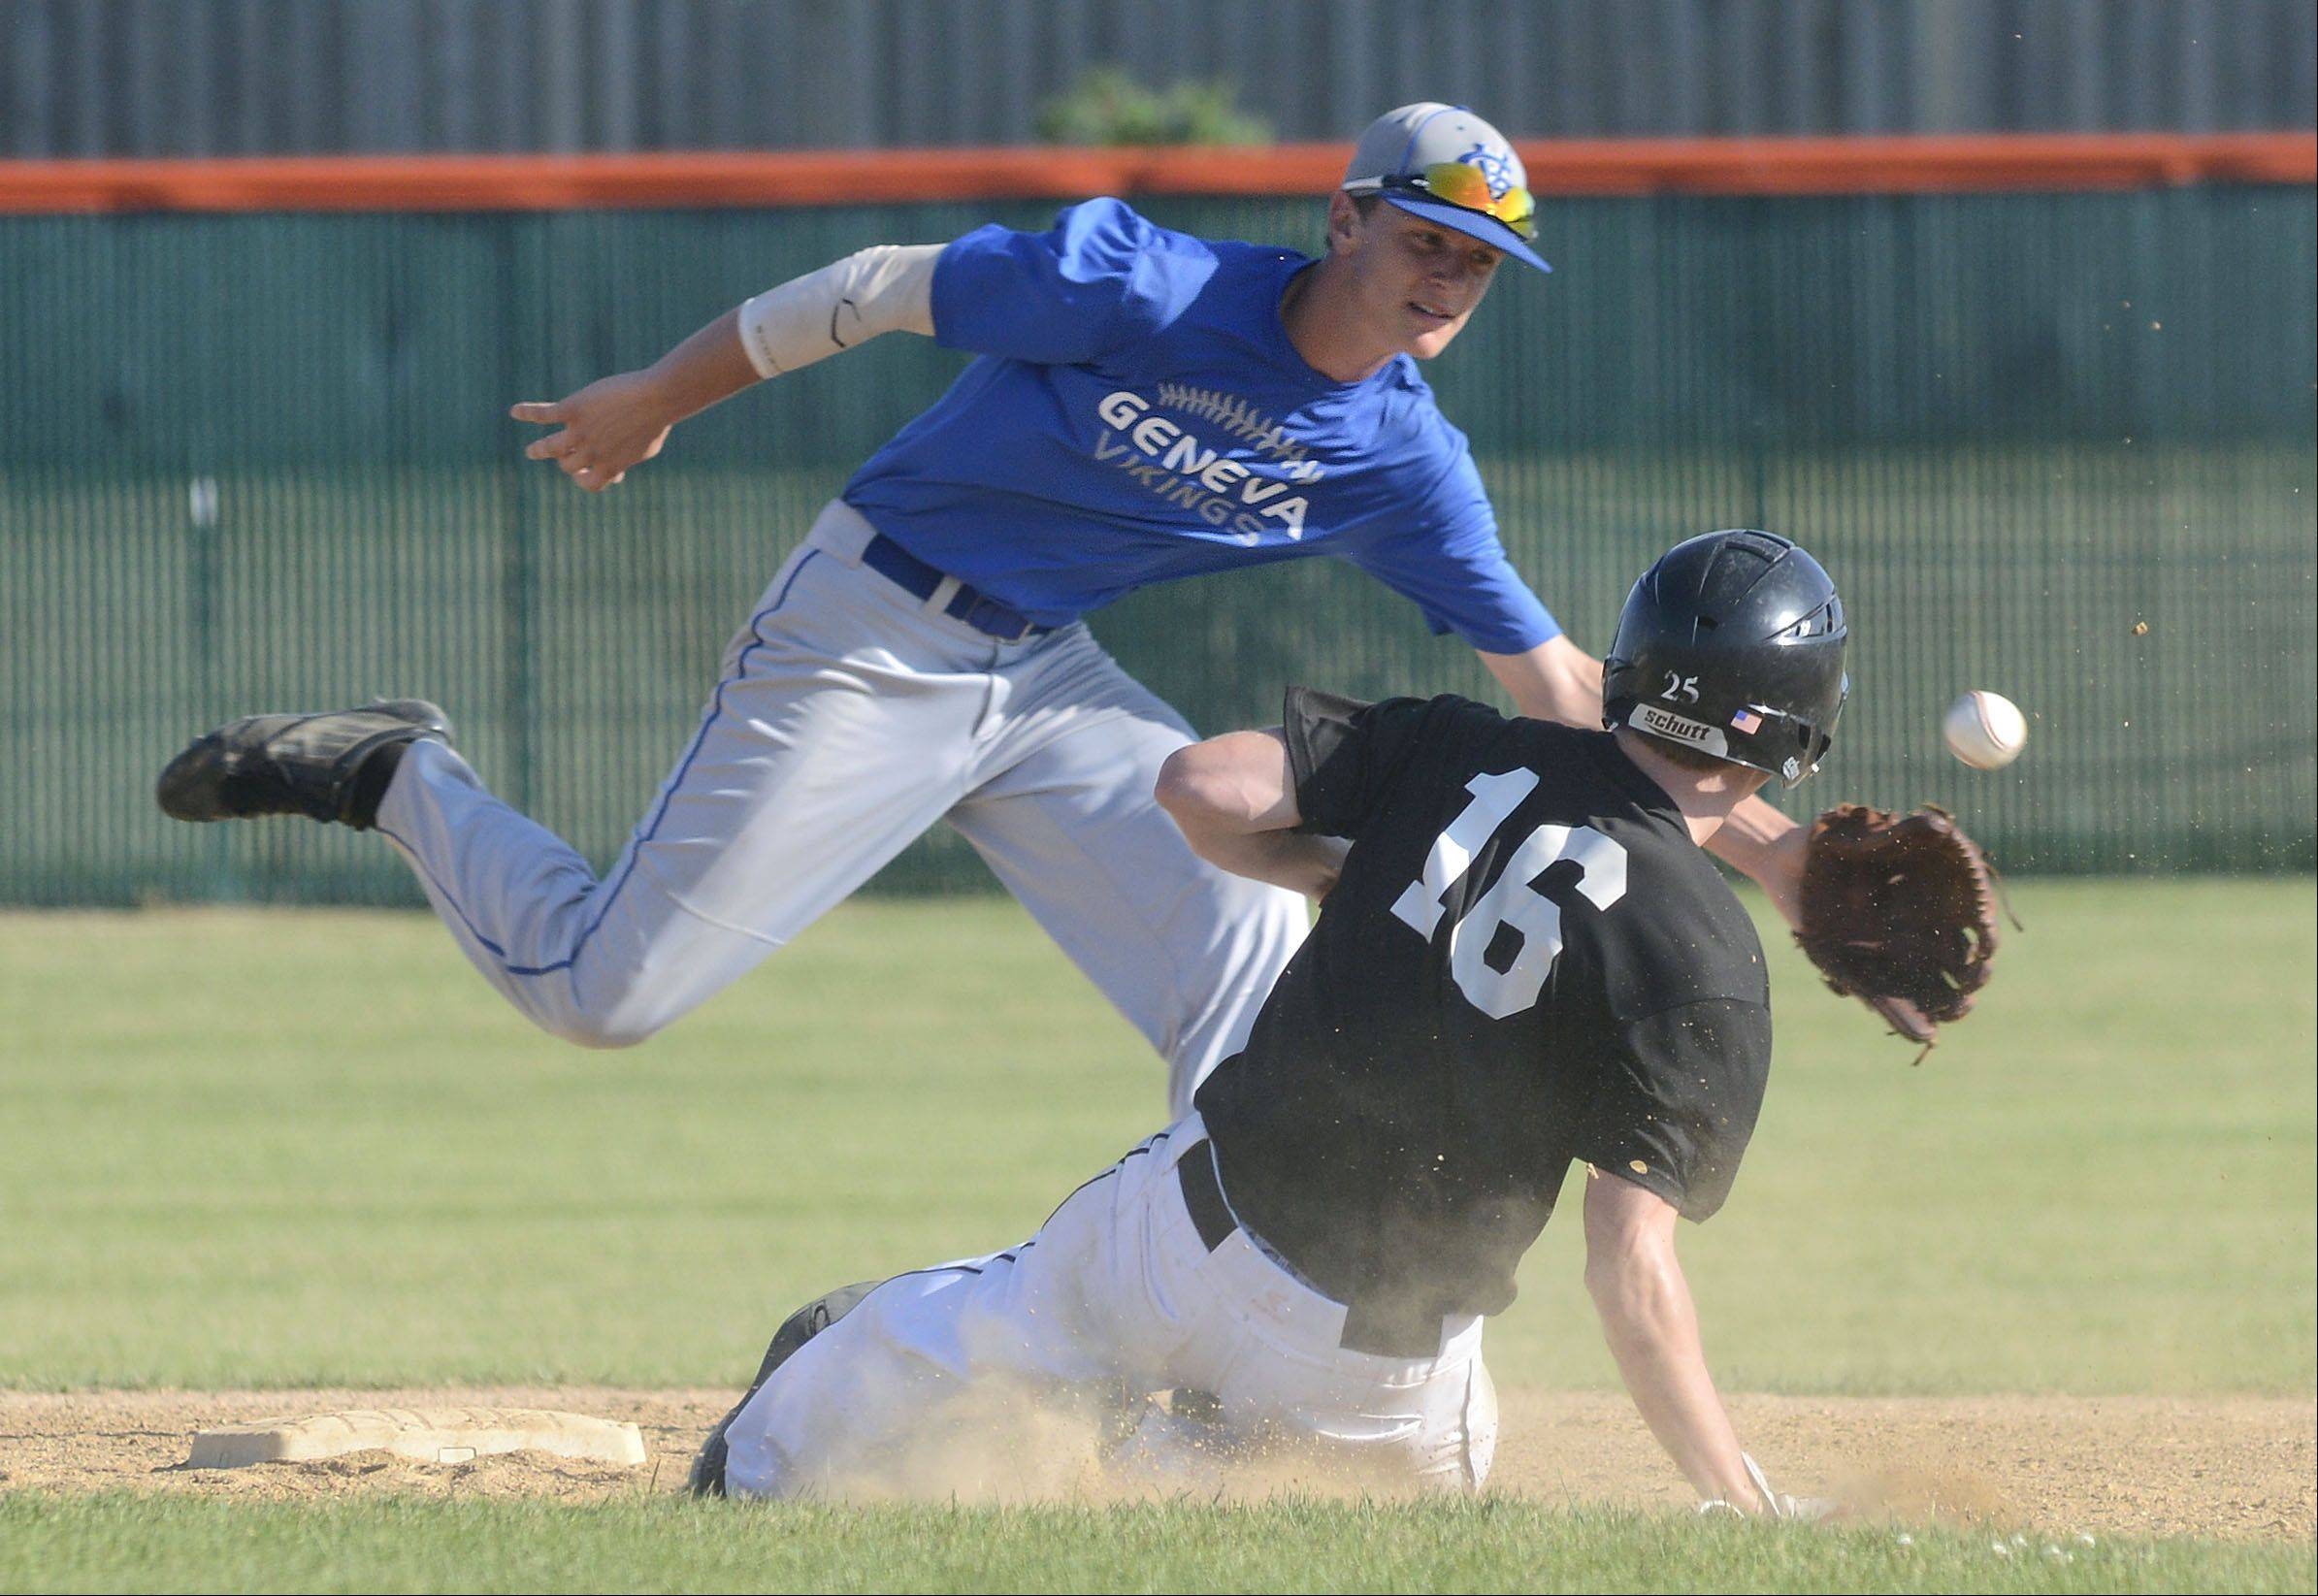 Geneva's Jack Wassel reaches for the ball as Batavia's Steve Busby slides safely into second base Wednesday.